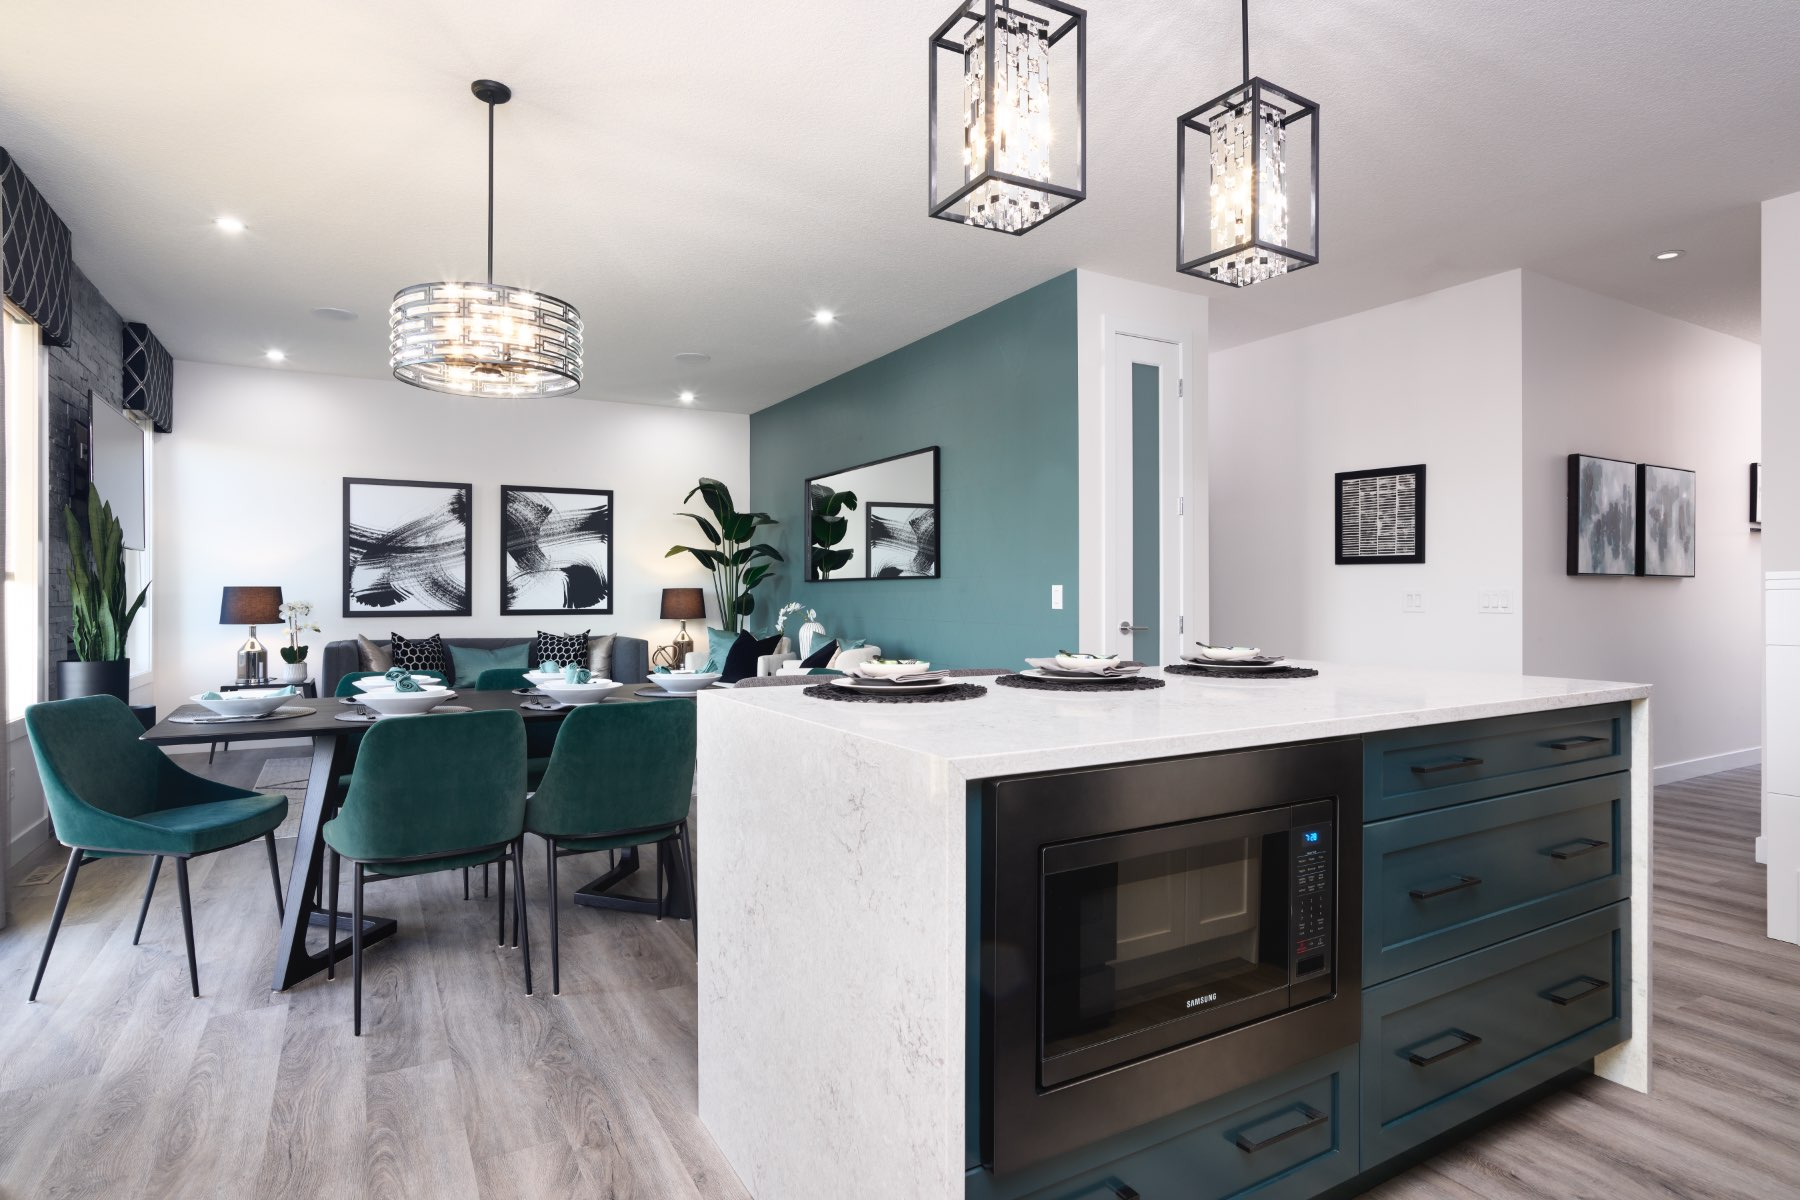 Fairview Plan Kitchen at Cityscape in Calgary Alberta by Mattamy Homes